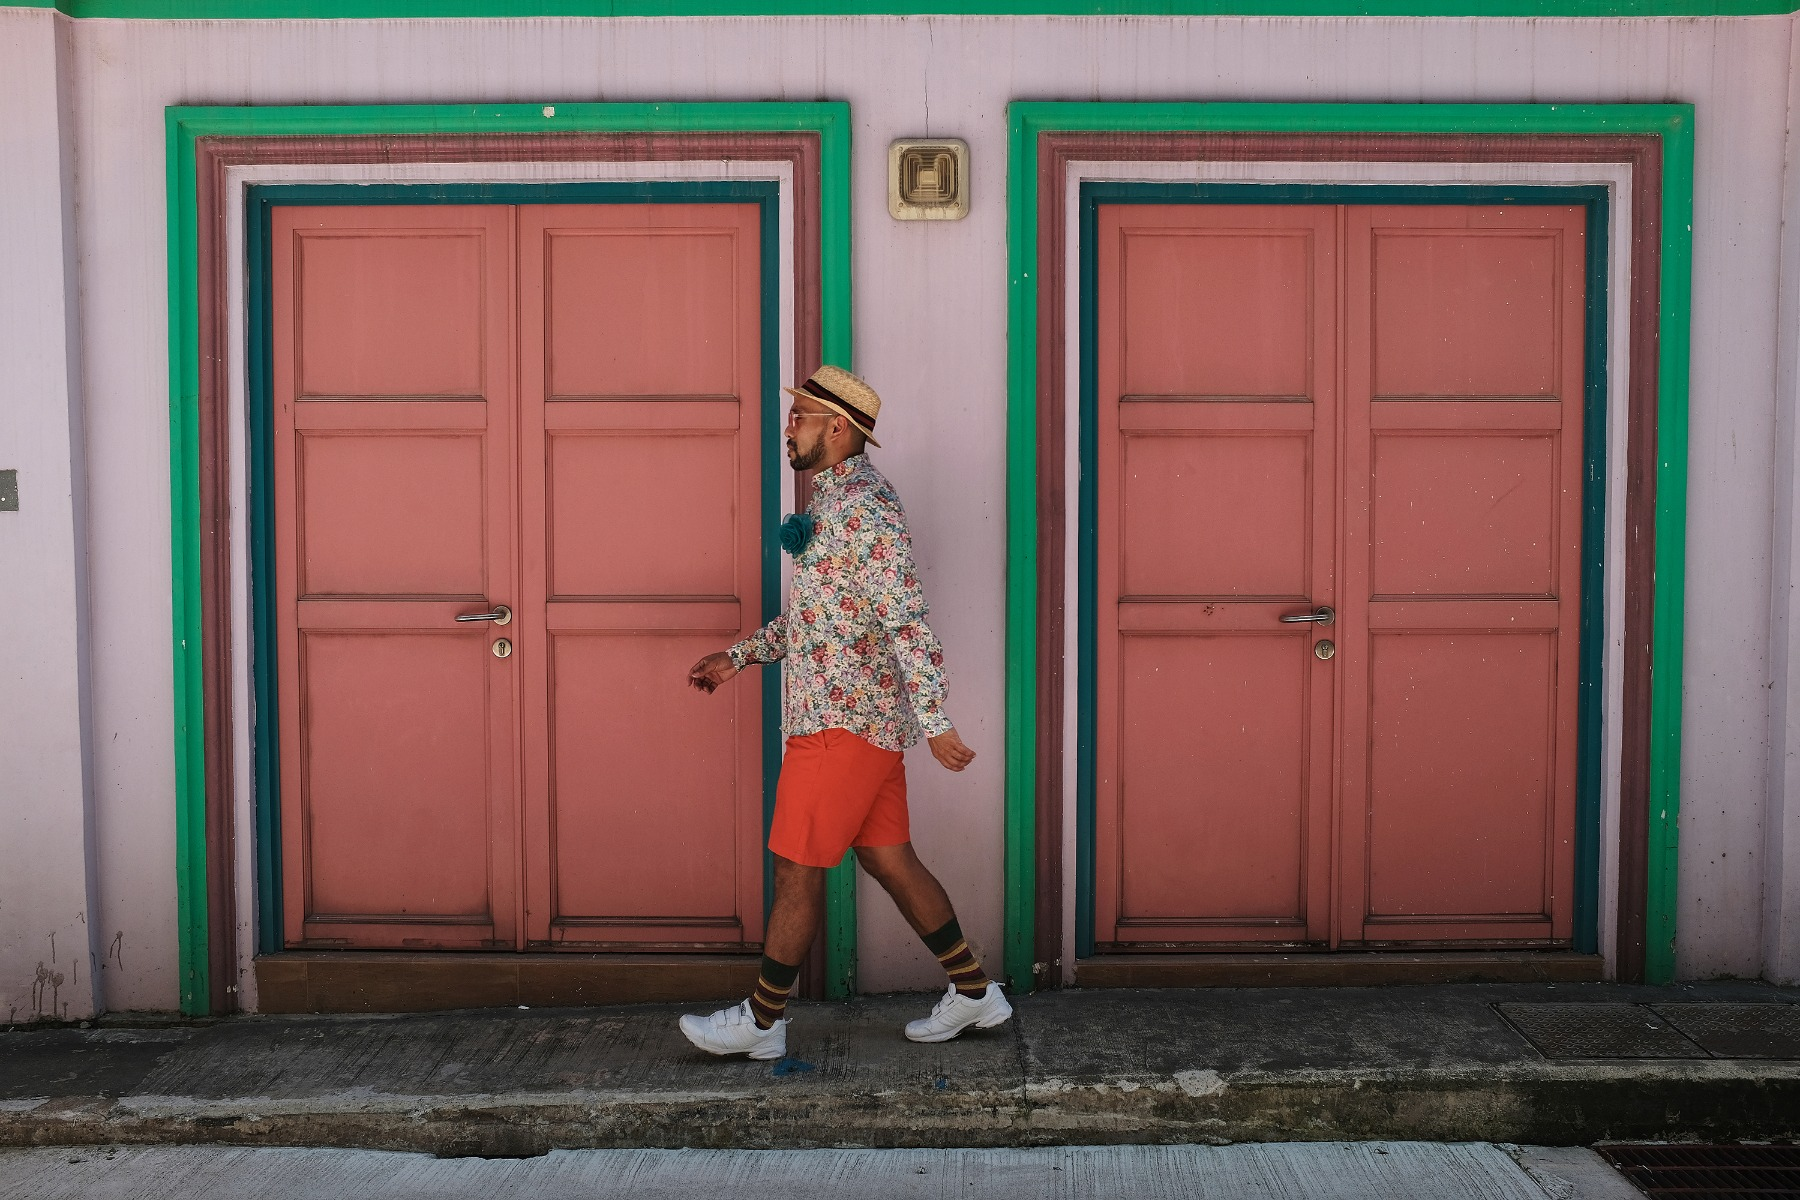 Bearded man in a hat, floral shirt & orange shorts walking past twin orange double doors, photographed with the Fujifilm X100F